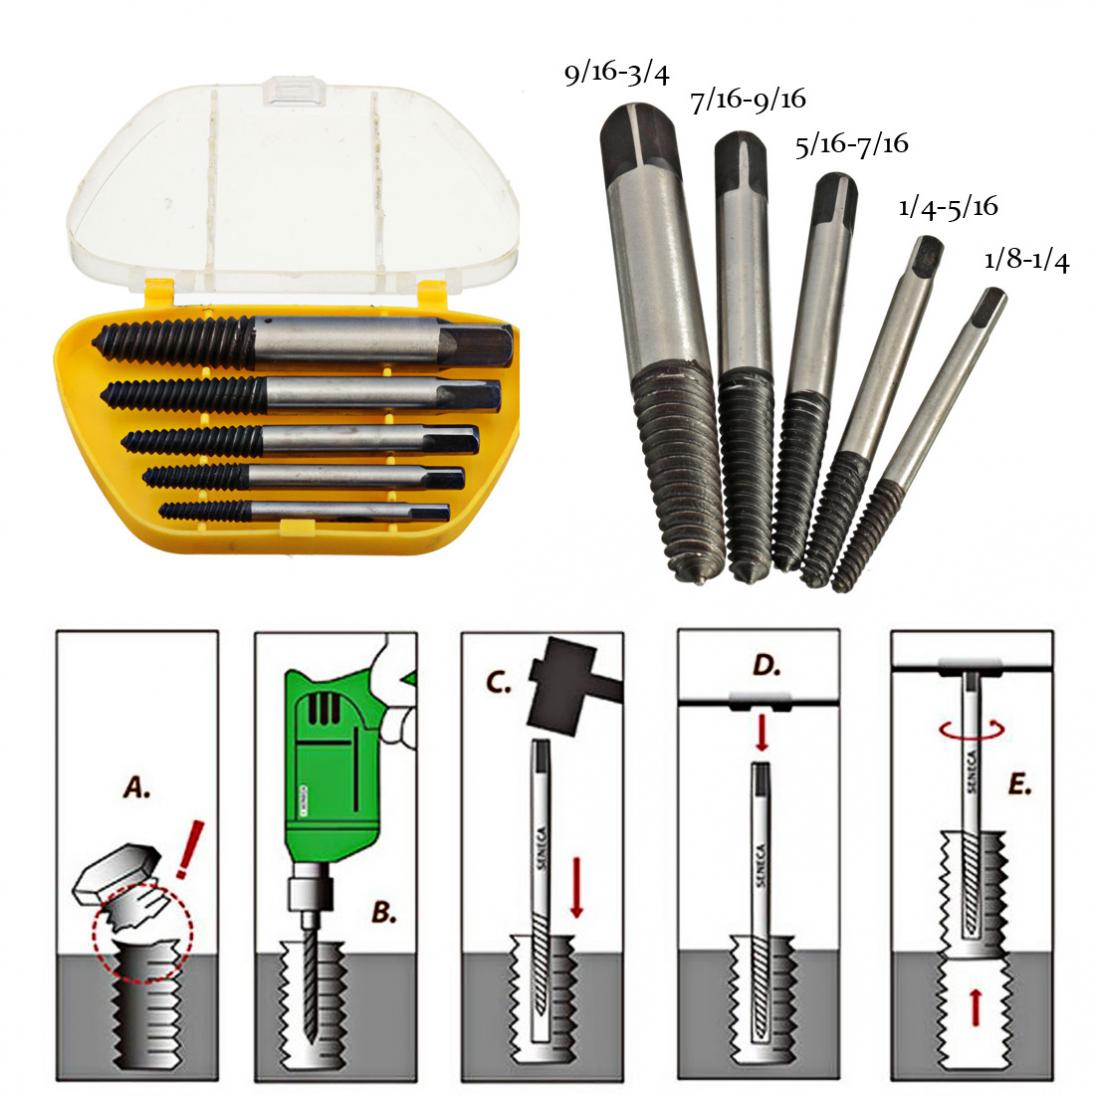 5Pcs/set Screw Extractor Easy Out Set Drill Bit Set Guide Broken Damaged Bolt Remover Drill Bits For Power Tools 5pcs set screw extractor drill bits guide broken damaged bolt remover drop shipping sale